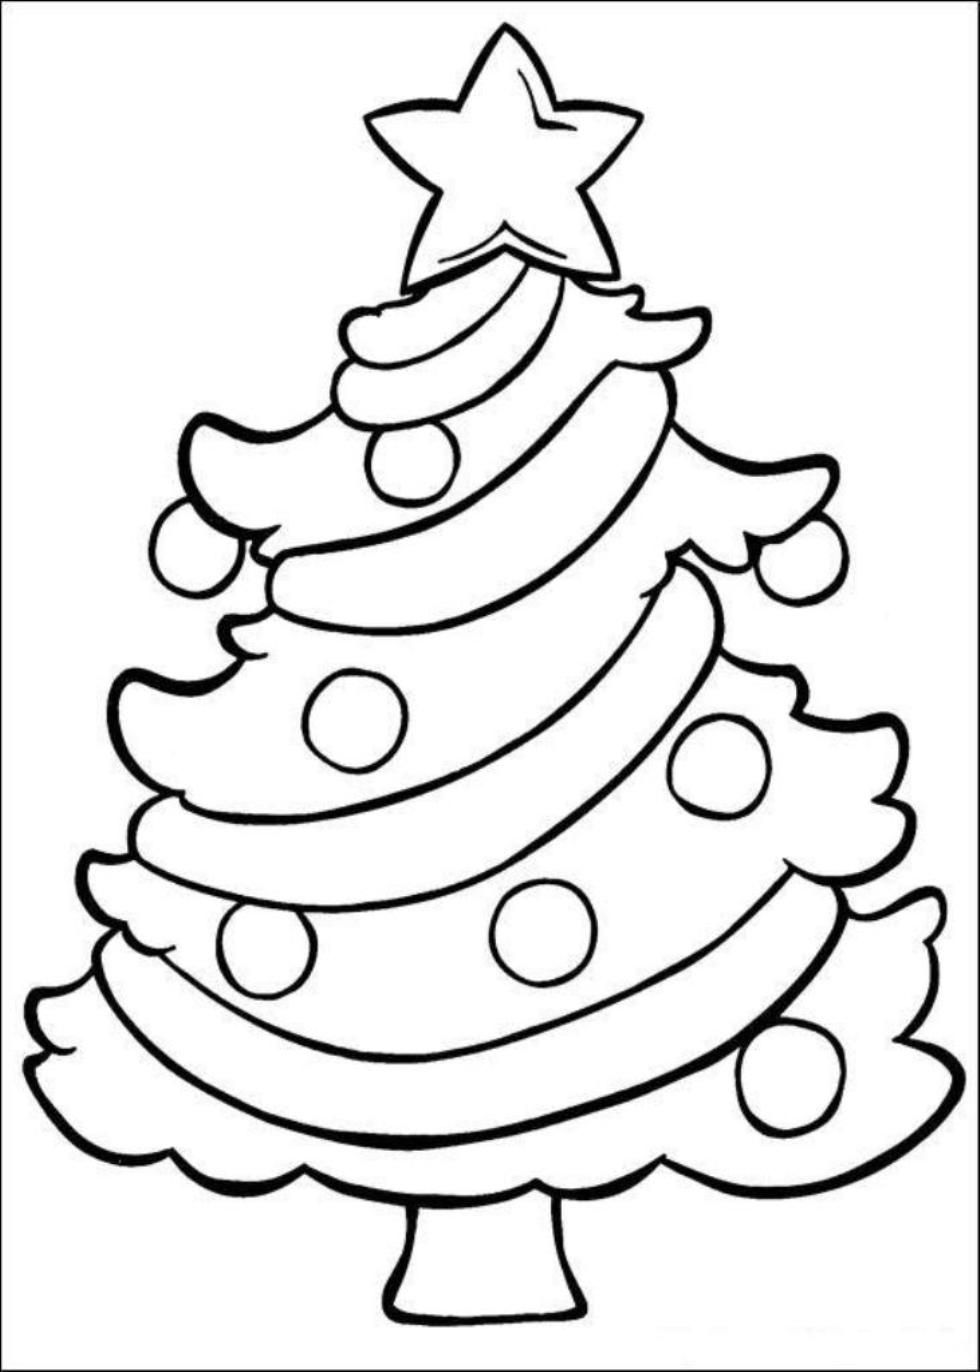 Printable coloring pages christmas - Christmas 174 Coloring Page For Kids And Adults From Cartoons Coloring Pages Christmas Coloring Pages Free Printable Coloring Image